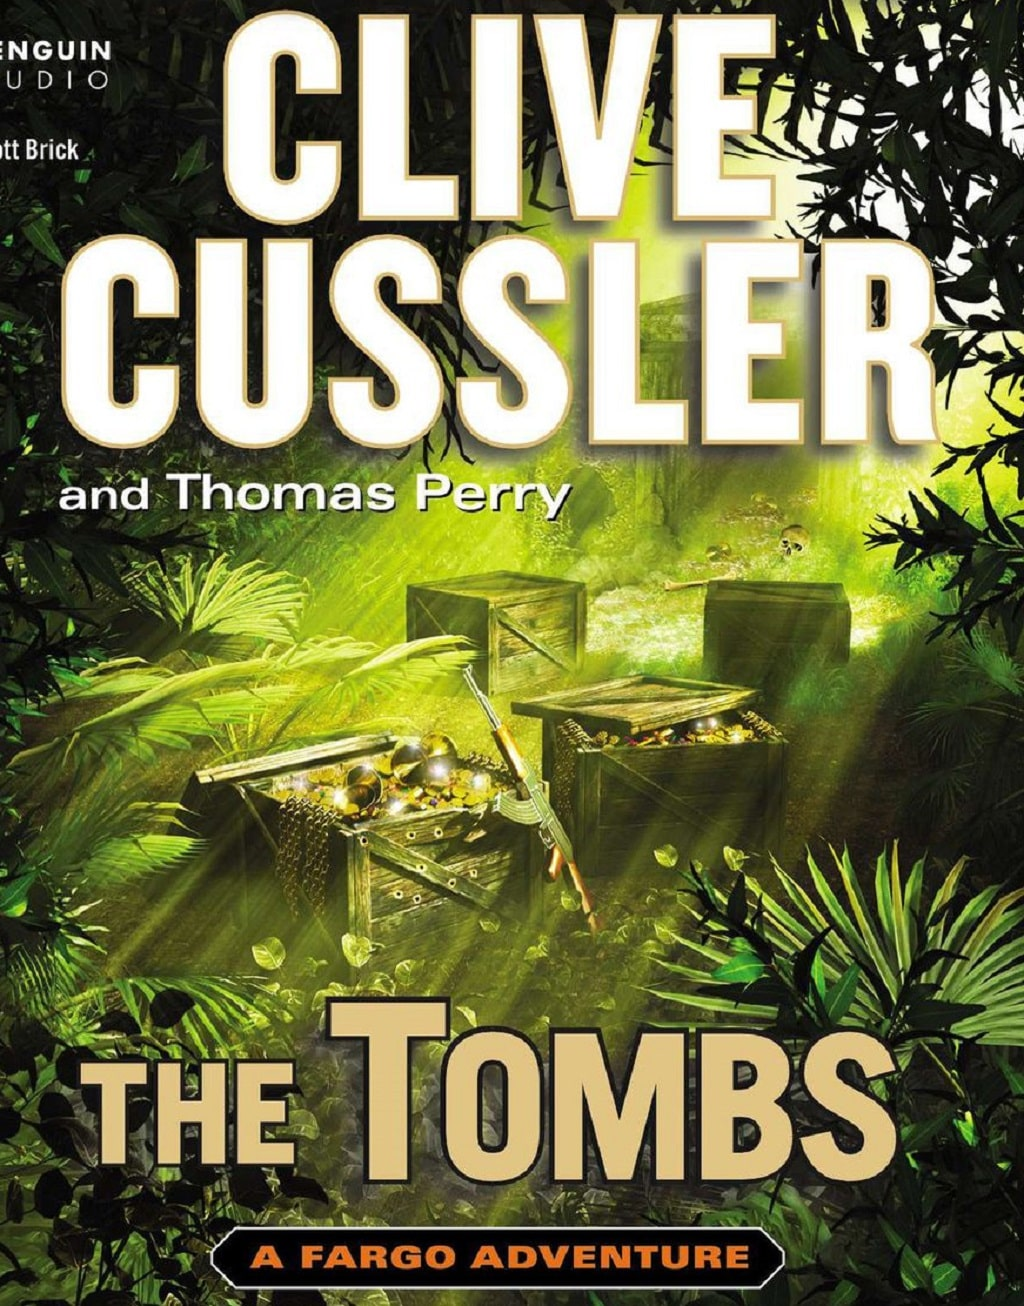 The Tombs Audiobook Free Download